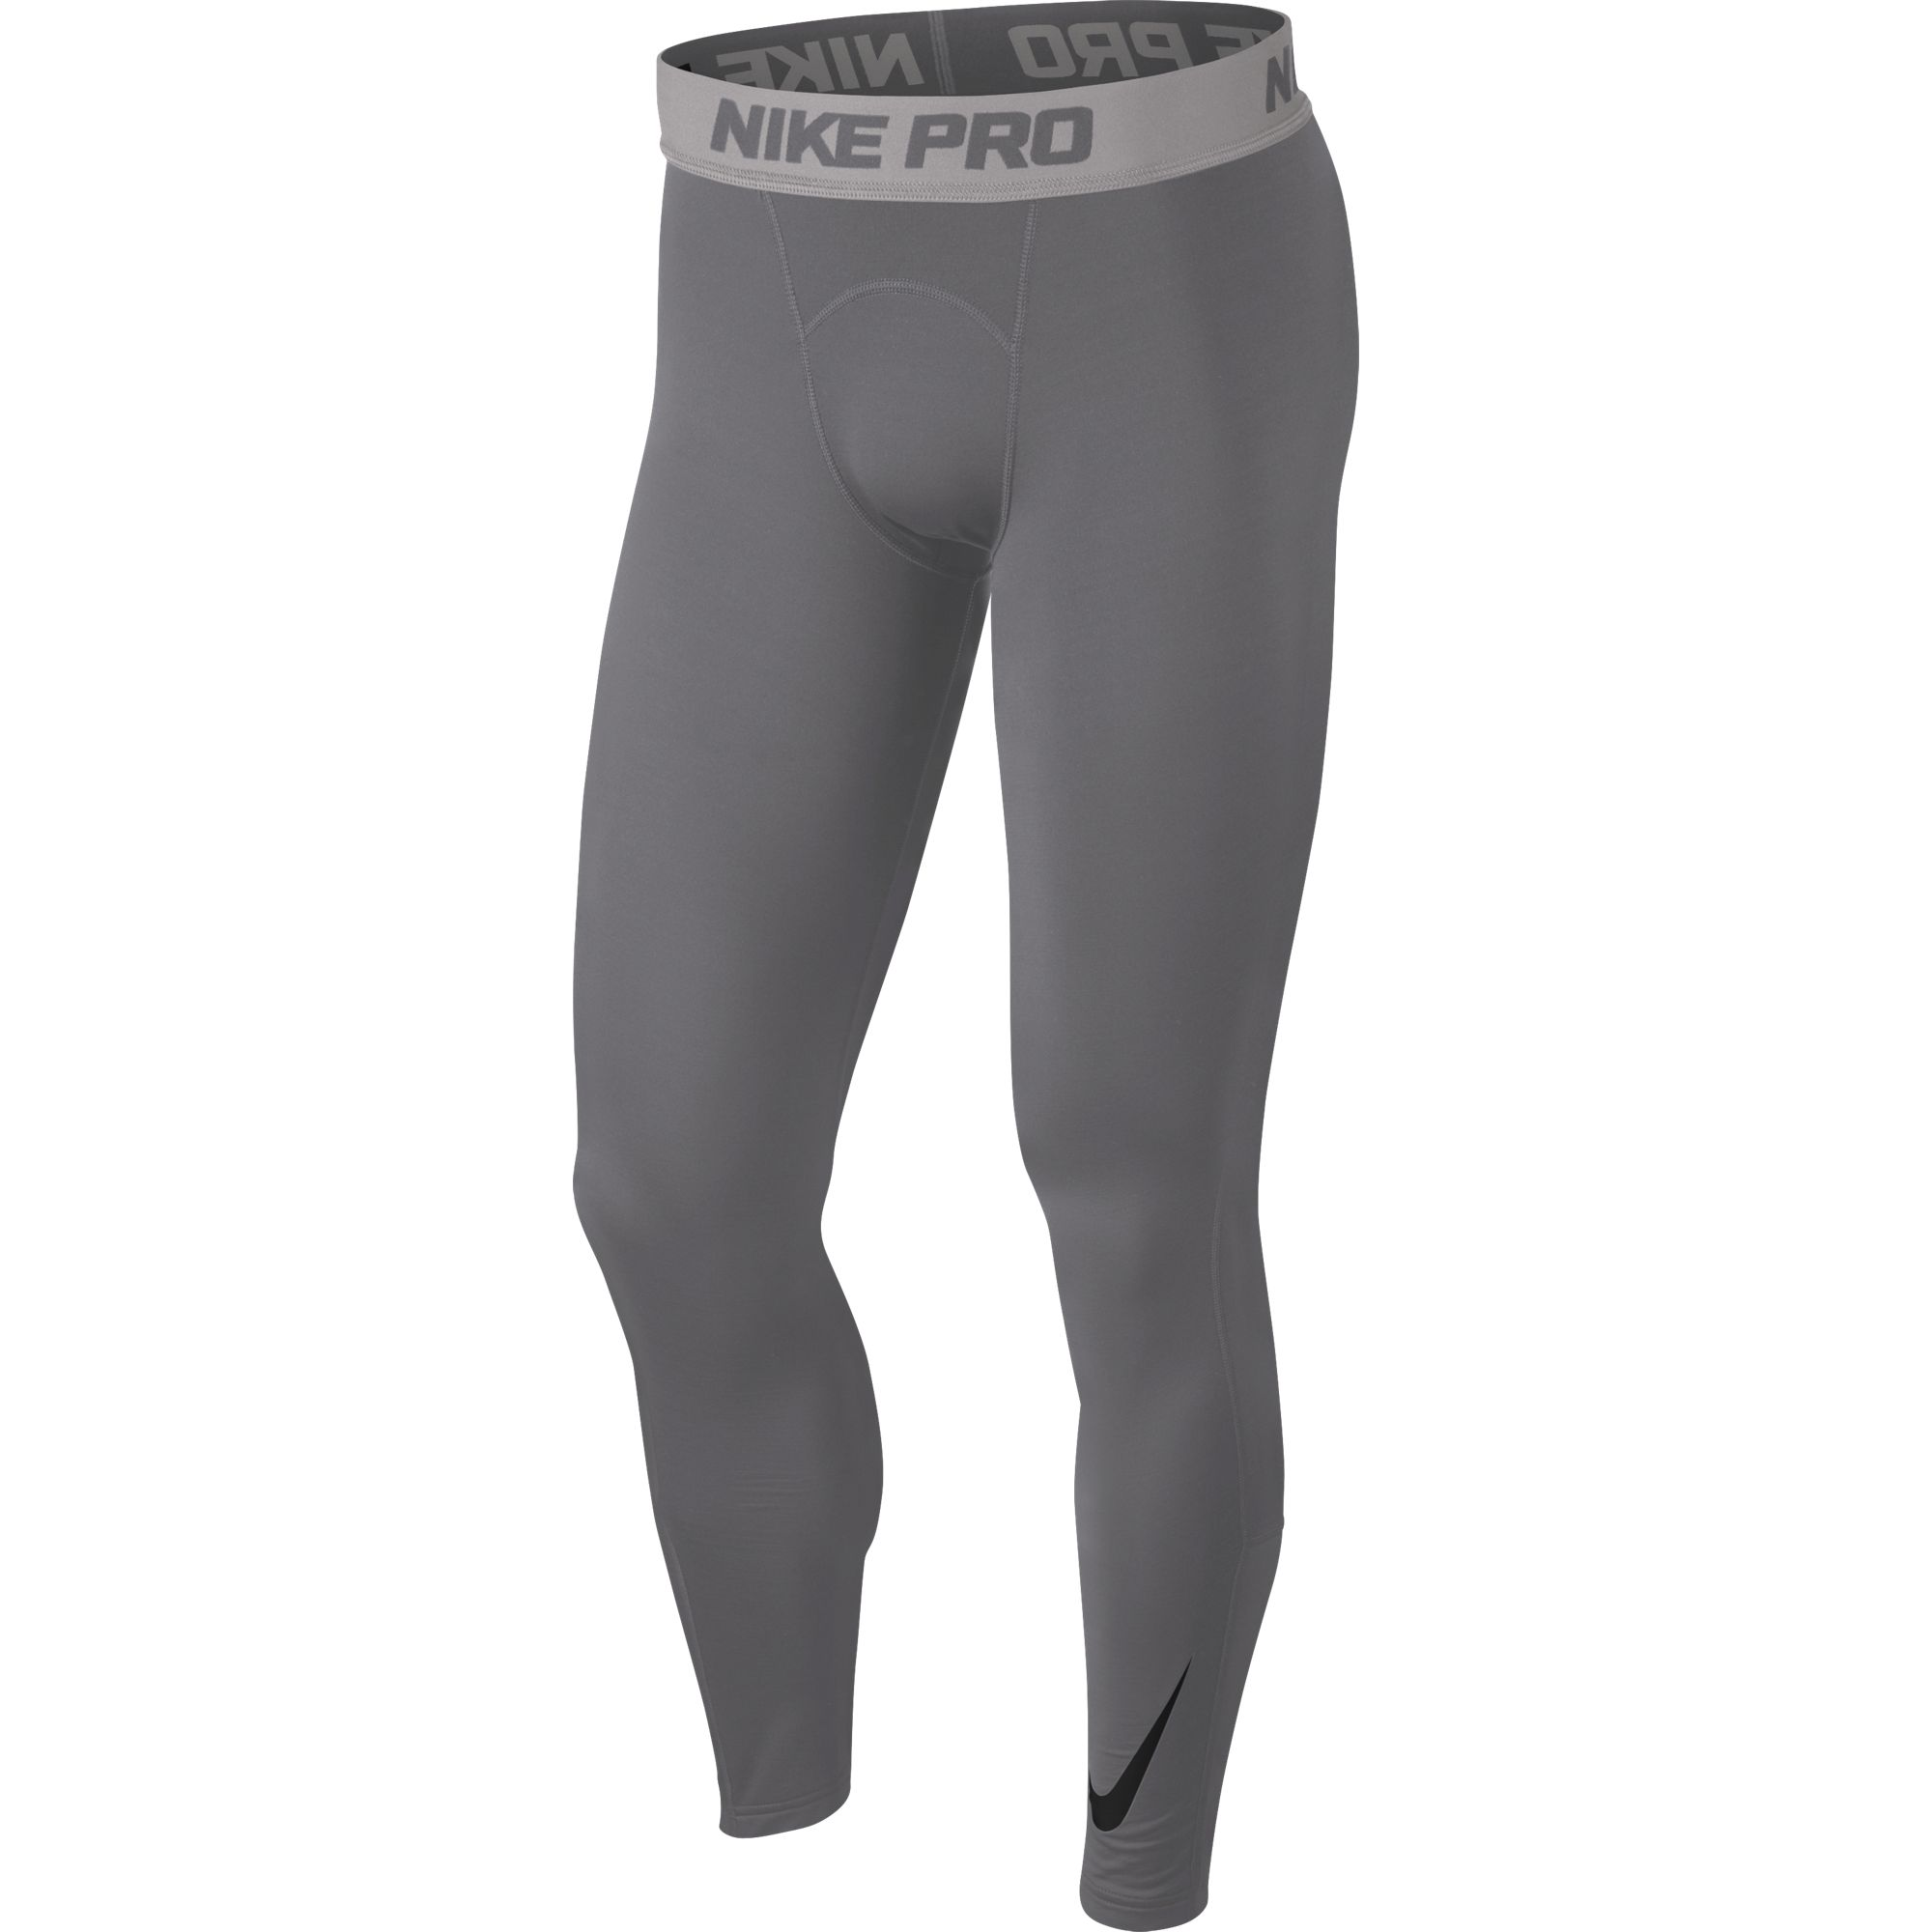 Men's Pro Dri-FIT Therma Tight, Heather Gray, swatch